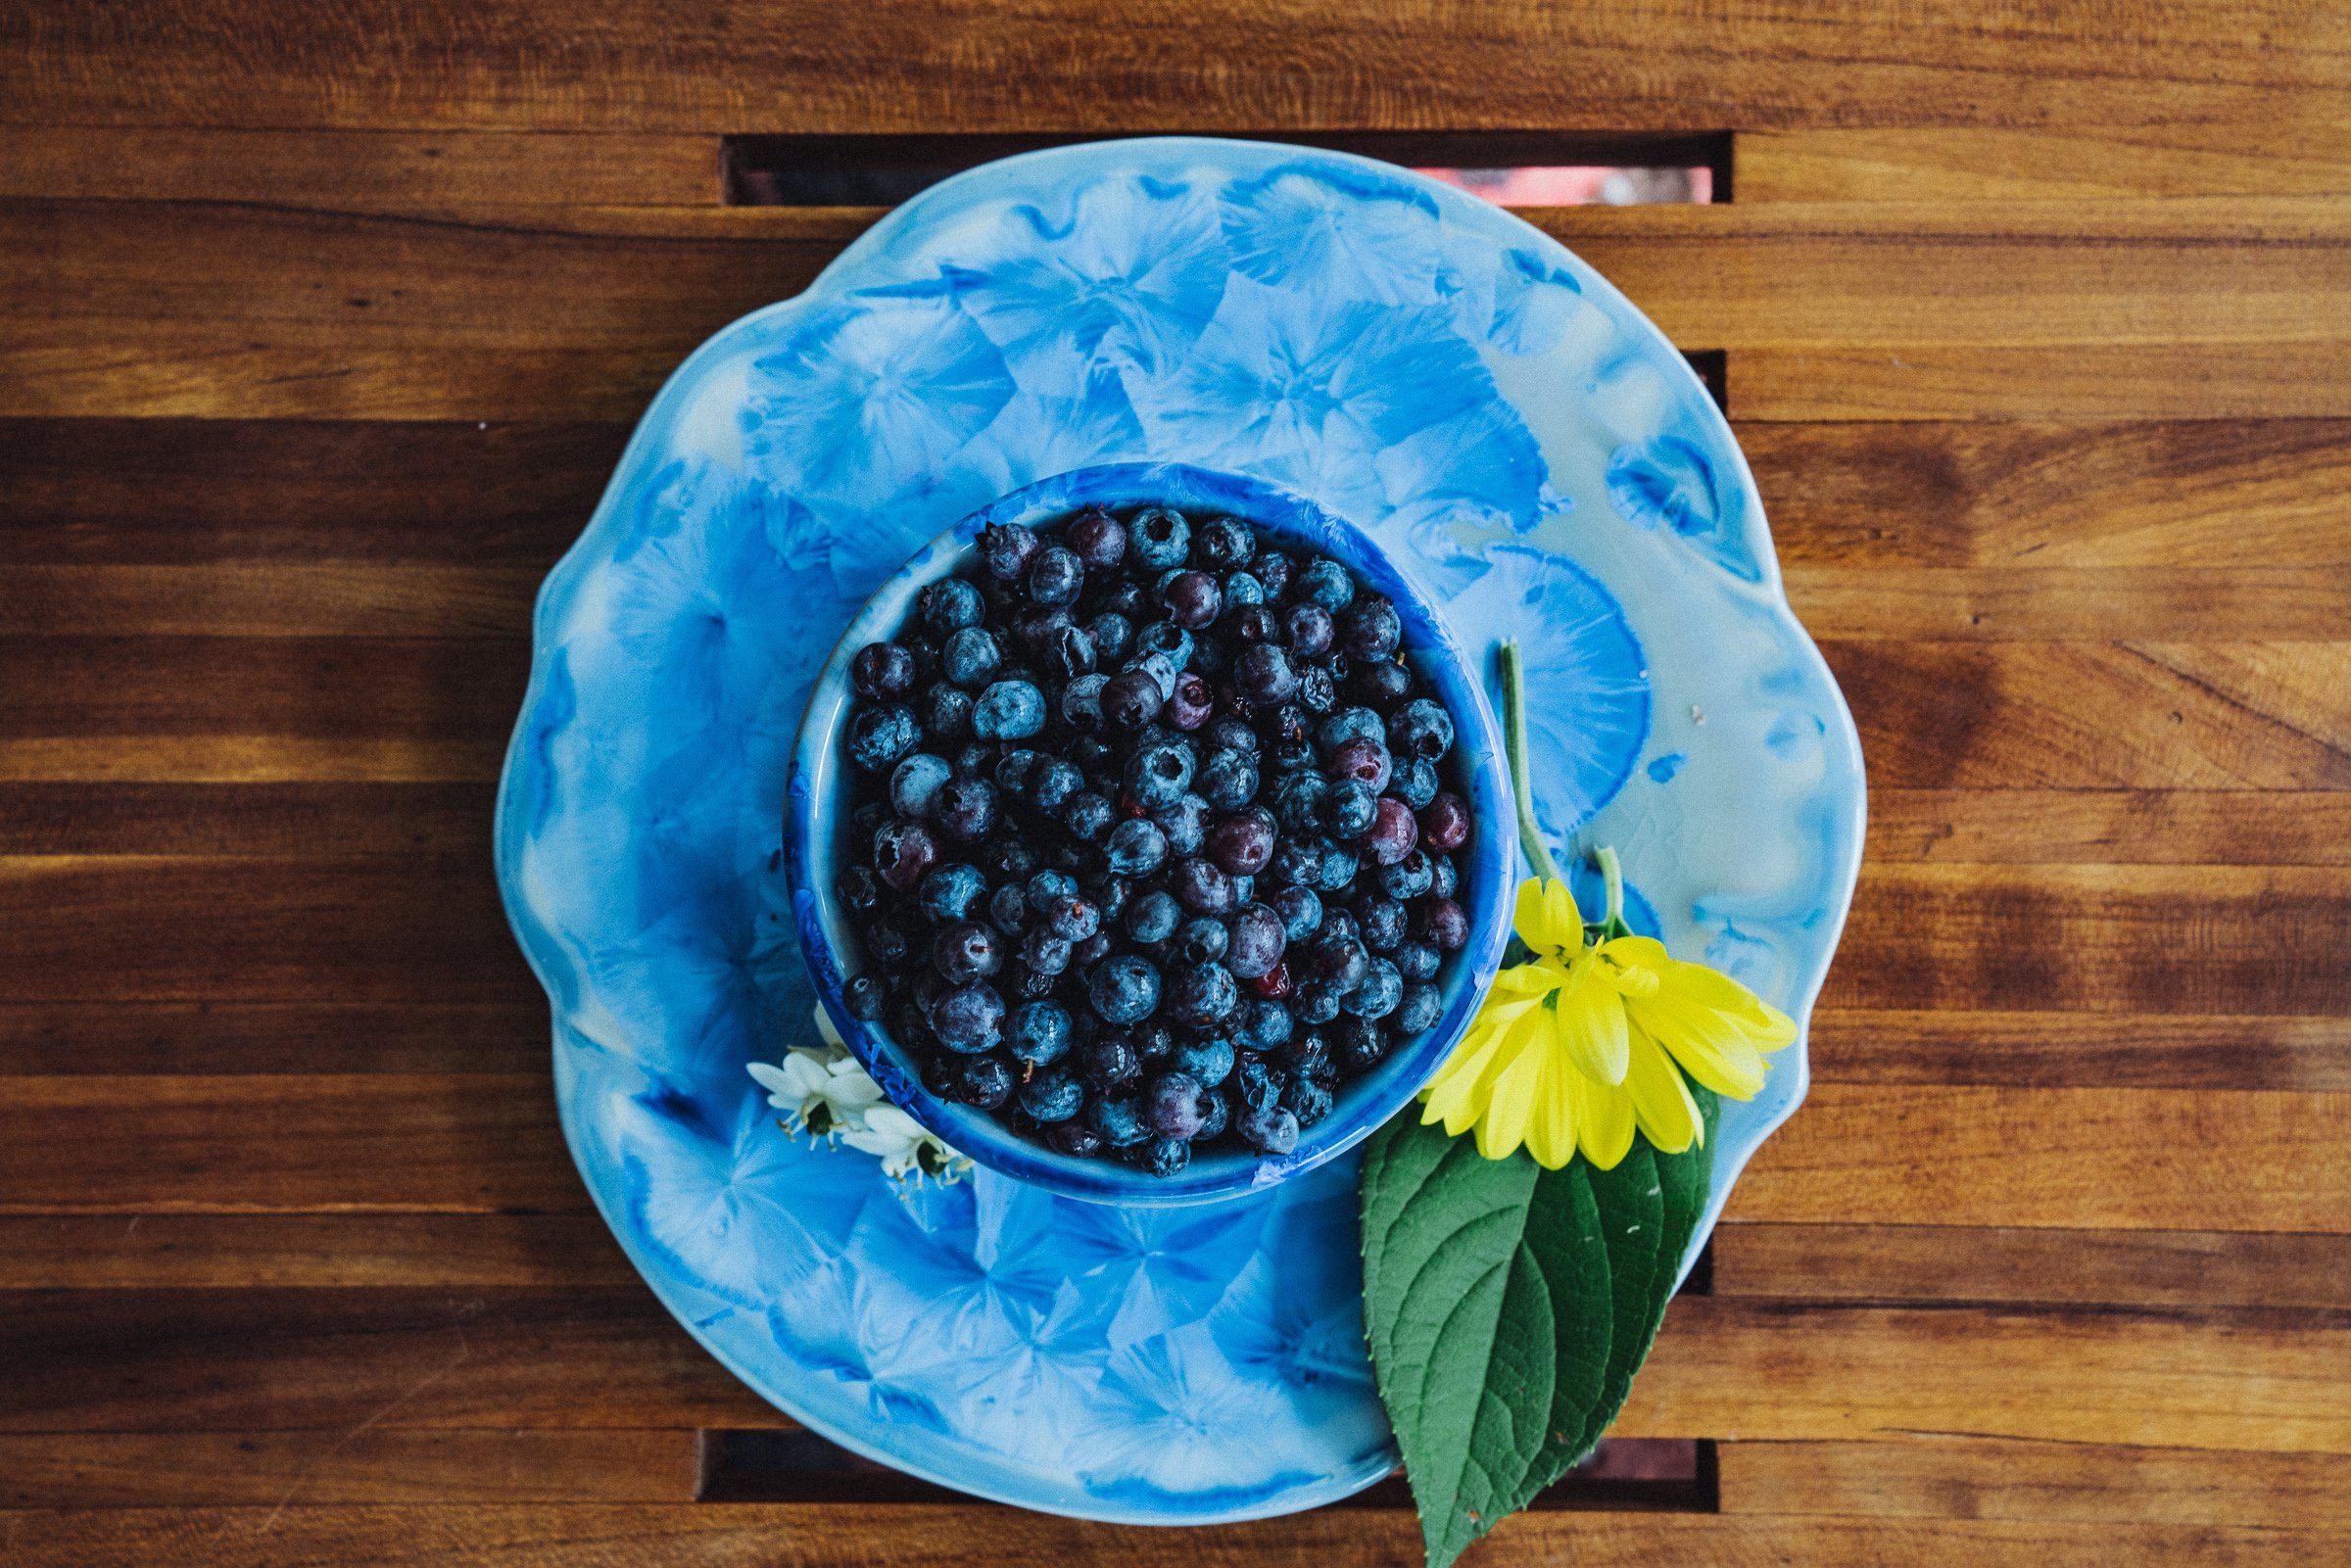 Appetizer Set - Bowl - Plate - overhead  - blueberries - flowers - Serveware - Small Server - Pottery - Edgecomb Potters